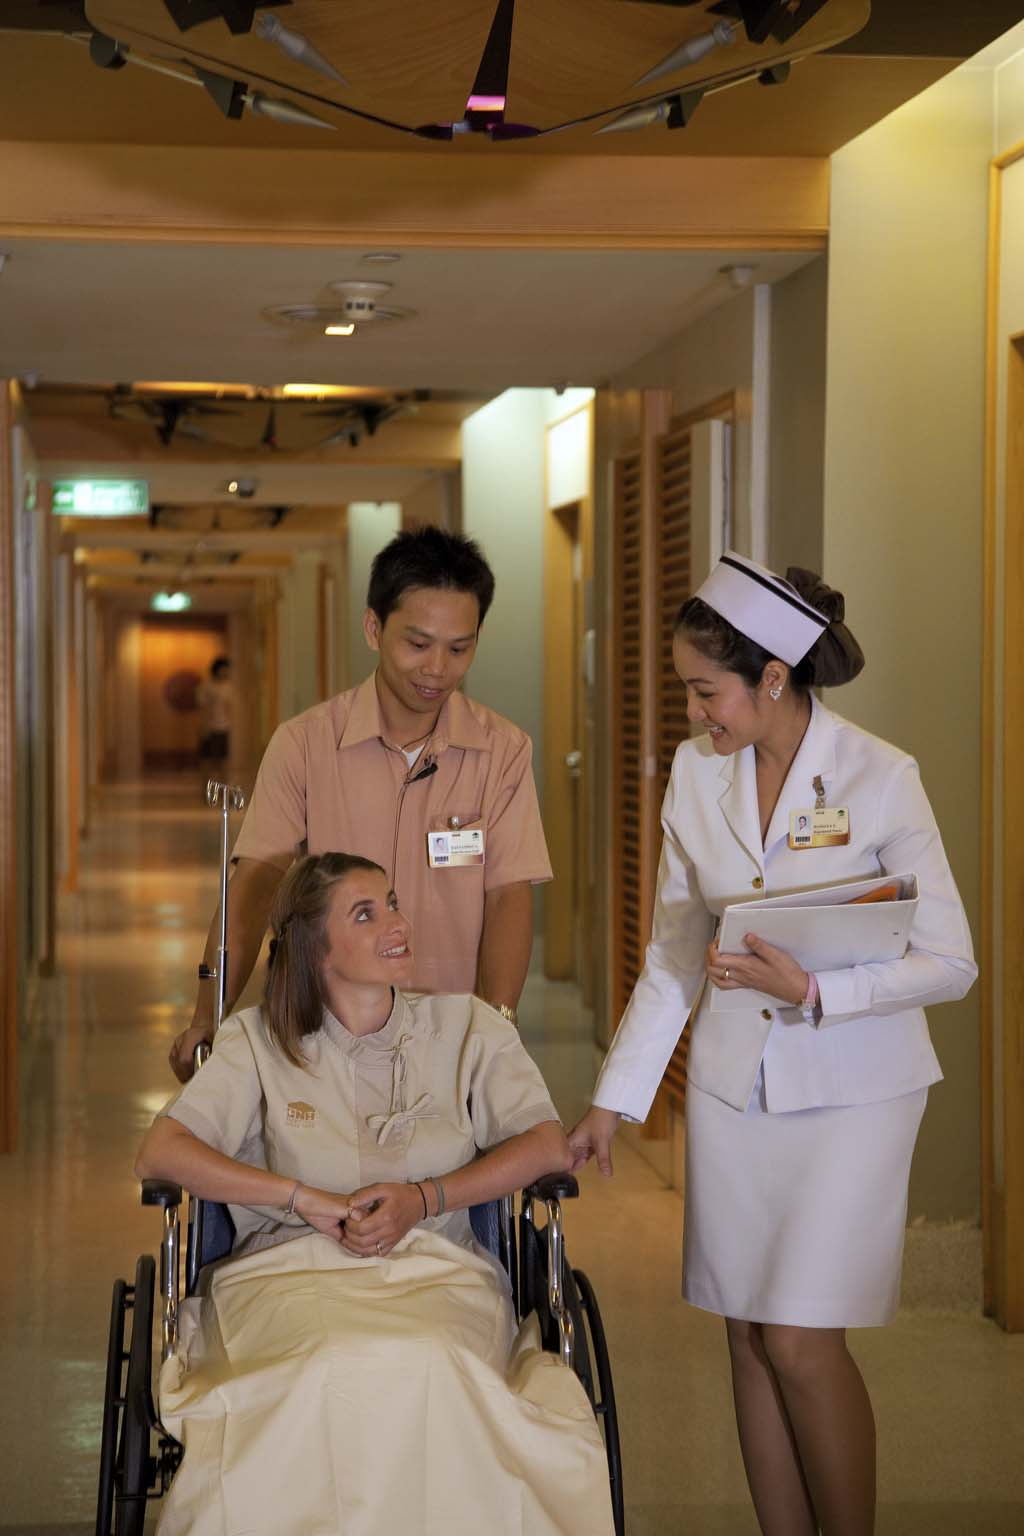 Medical Tourism Thailand - patient in wheelchair